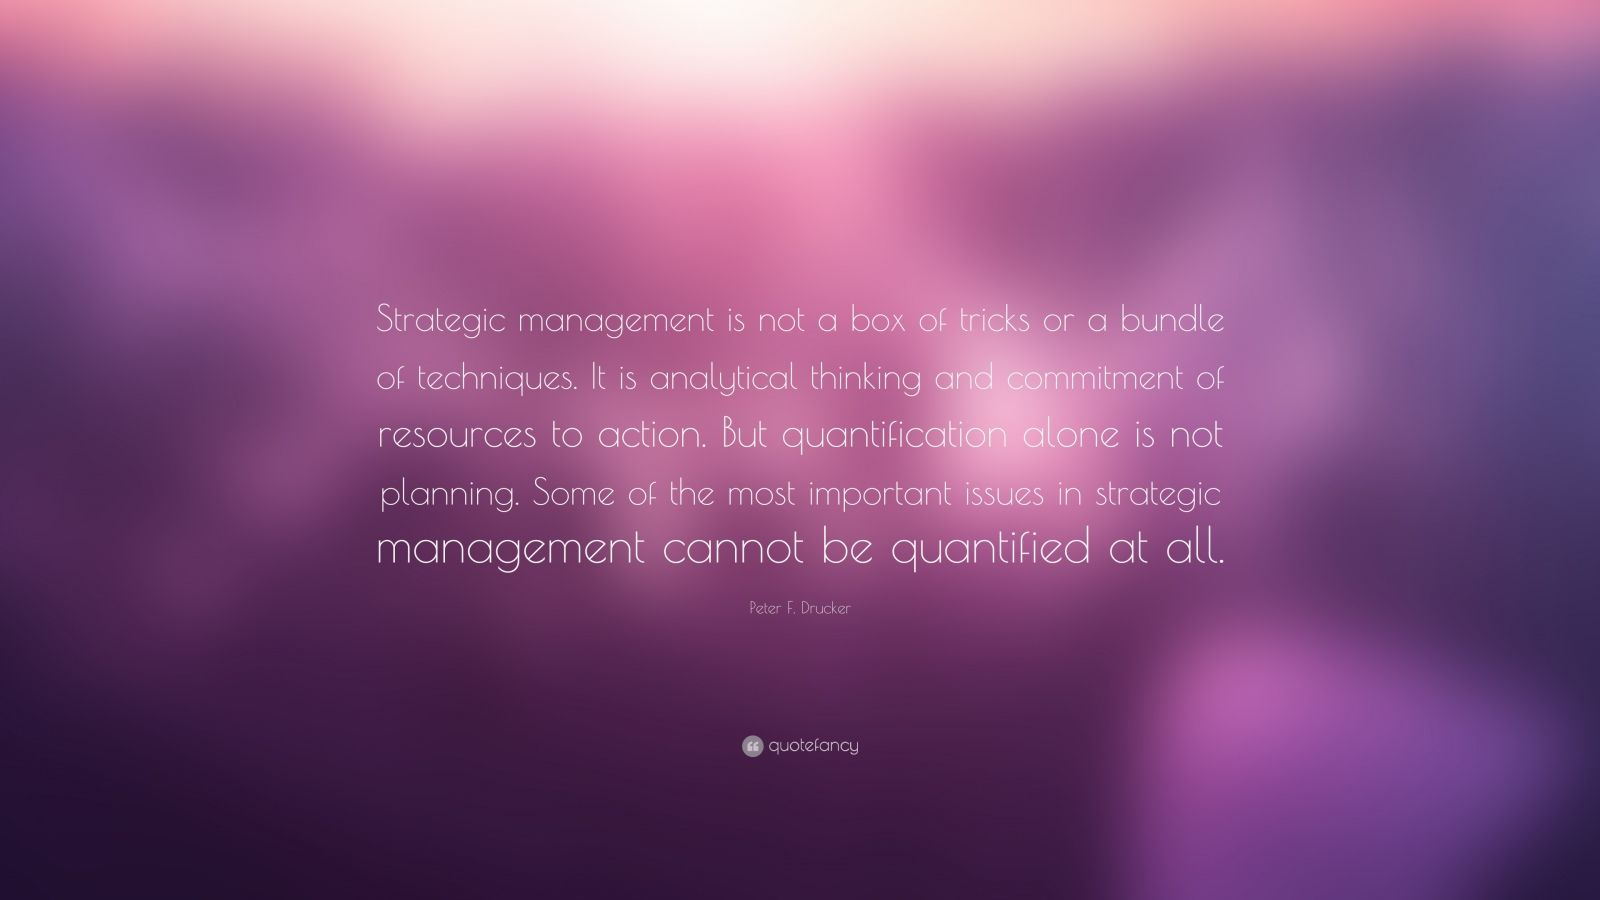 """Peter F. Drucker Quote: """"Strategic management is not a box of tricks or a bundle of techniques. It is analytical thinking and commitment of resources to action. But quantification alone is not planning. Some of the most important issues in strategic management cannot be quantified at all."""""""